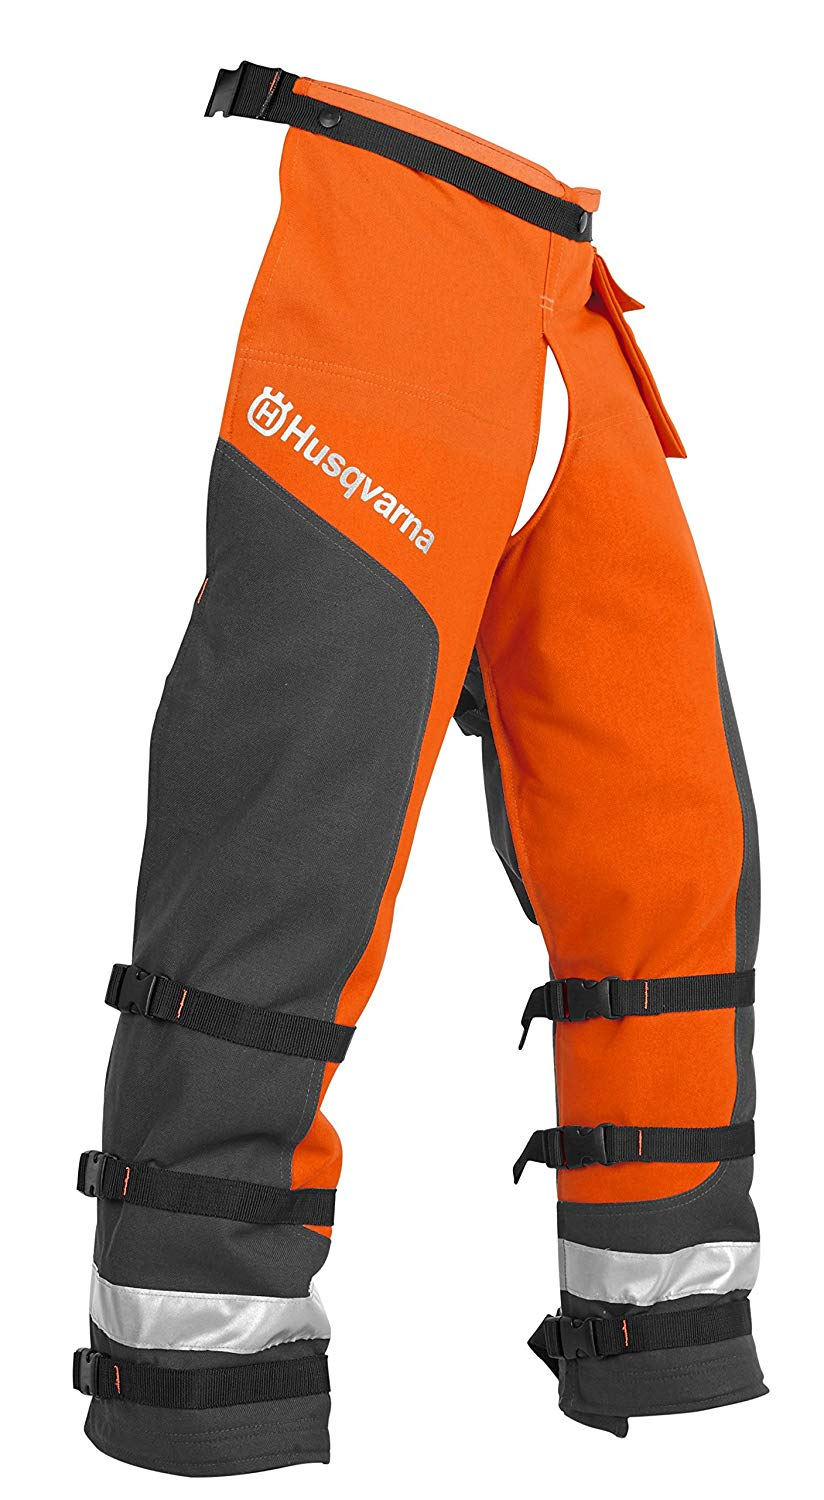 Top 10 Best Chainsaw Chaps